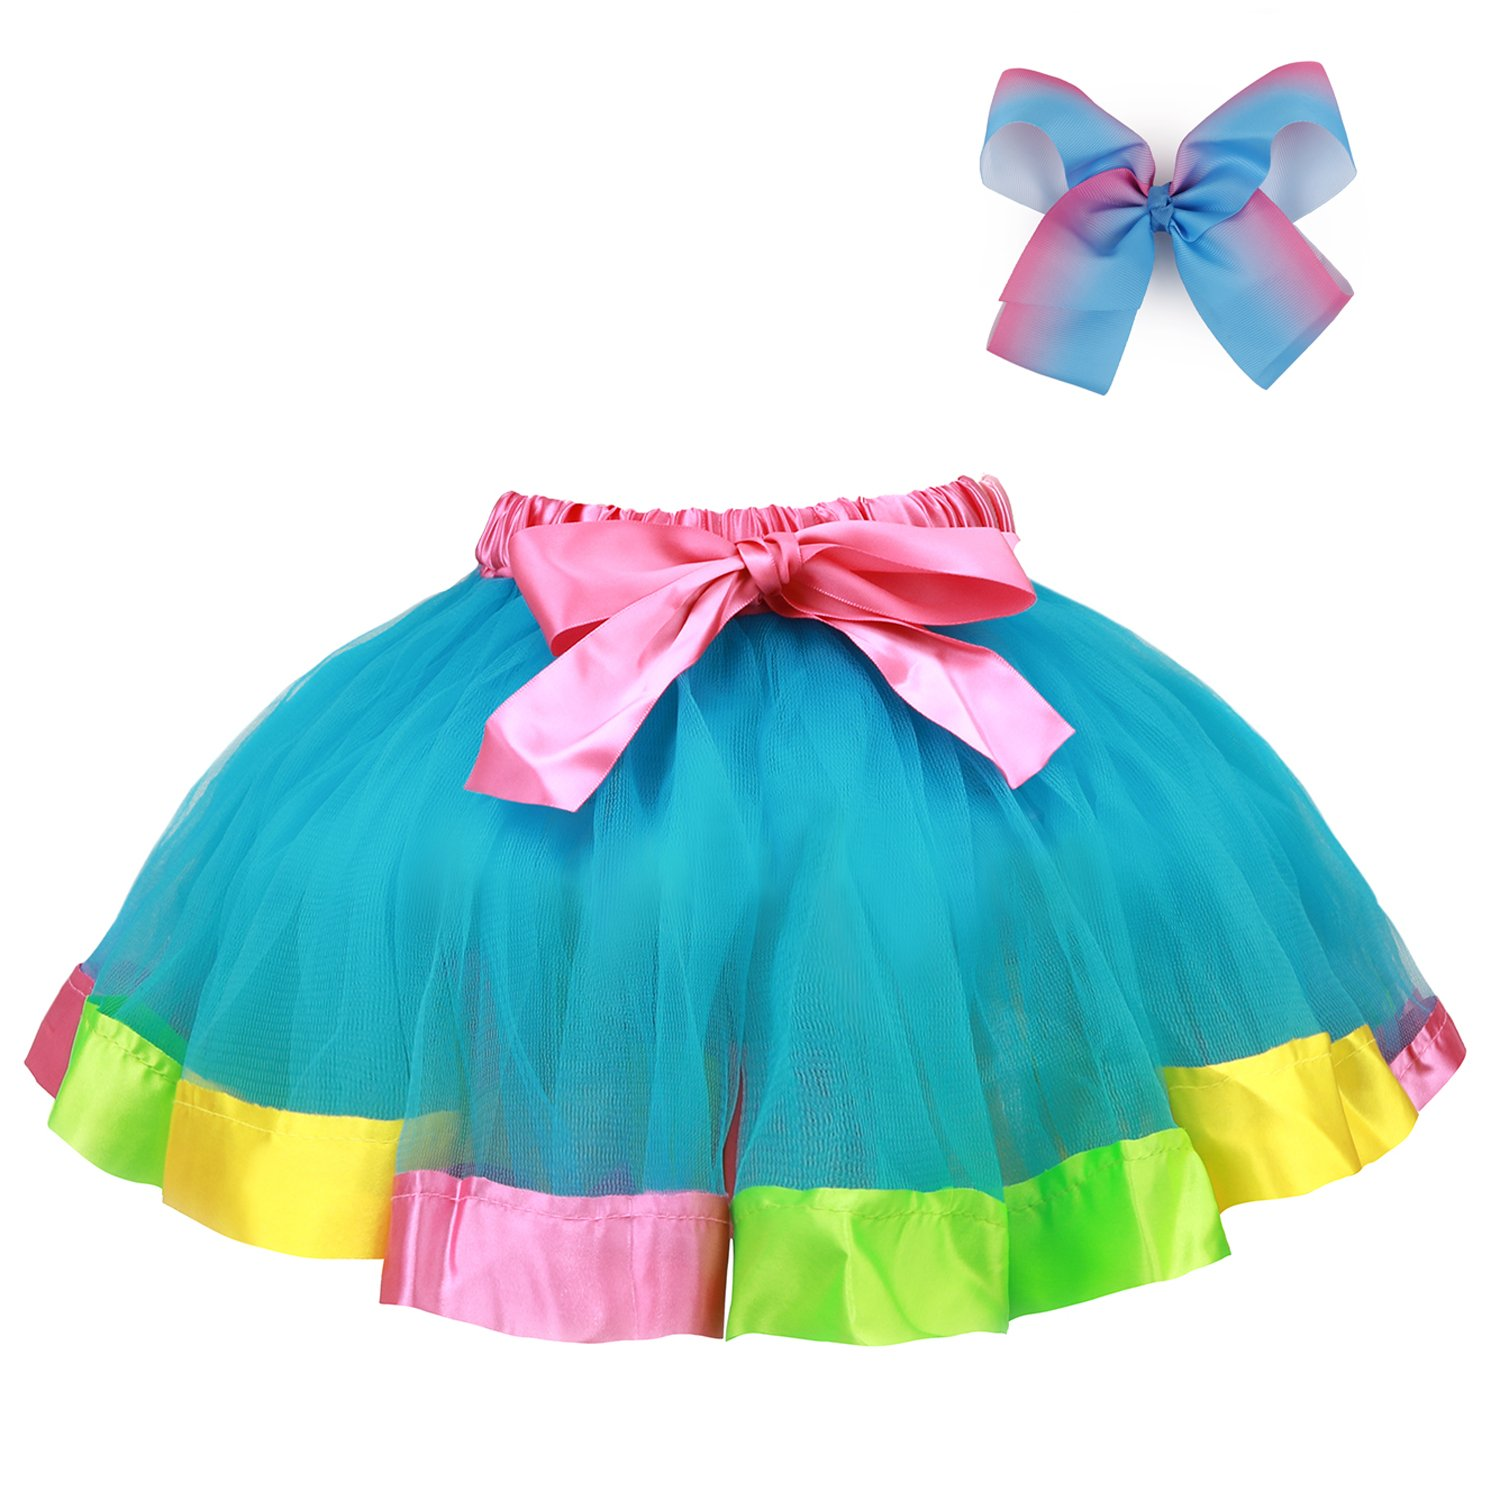 RunRRIn Tutu Skirt, Layered Ballet Tulle Rainbow Tutus for Little Girl Dress up with Colorful Hair Bows(Sky Blue-L)